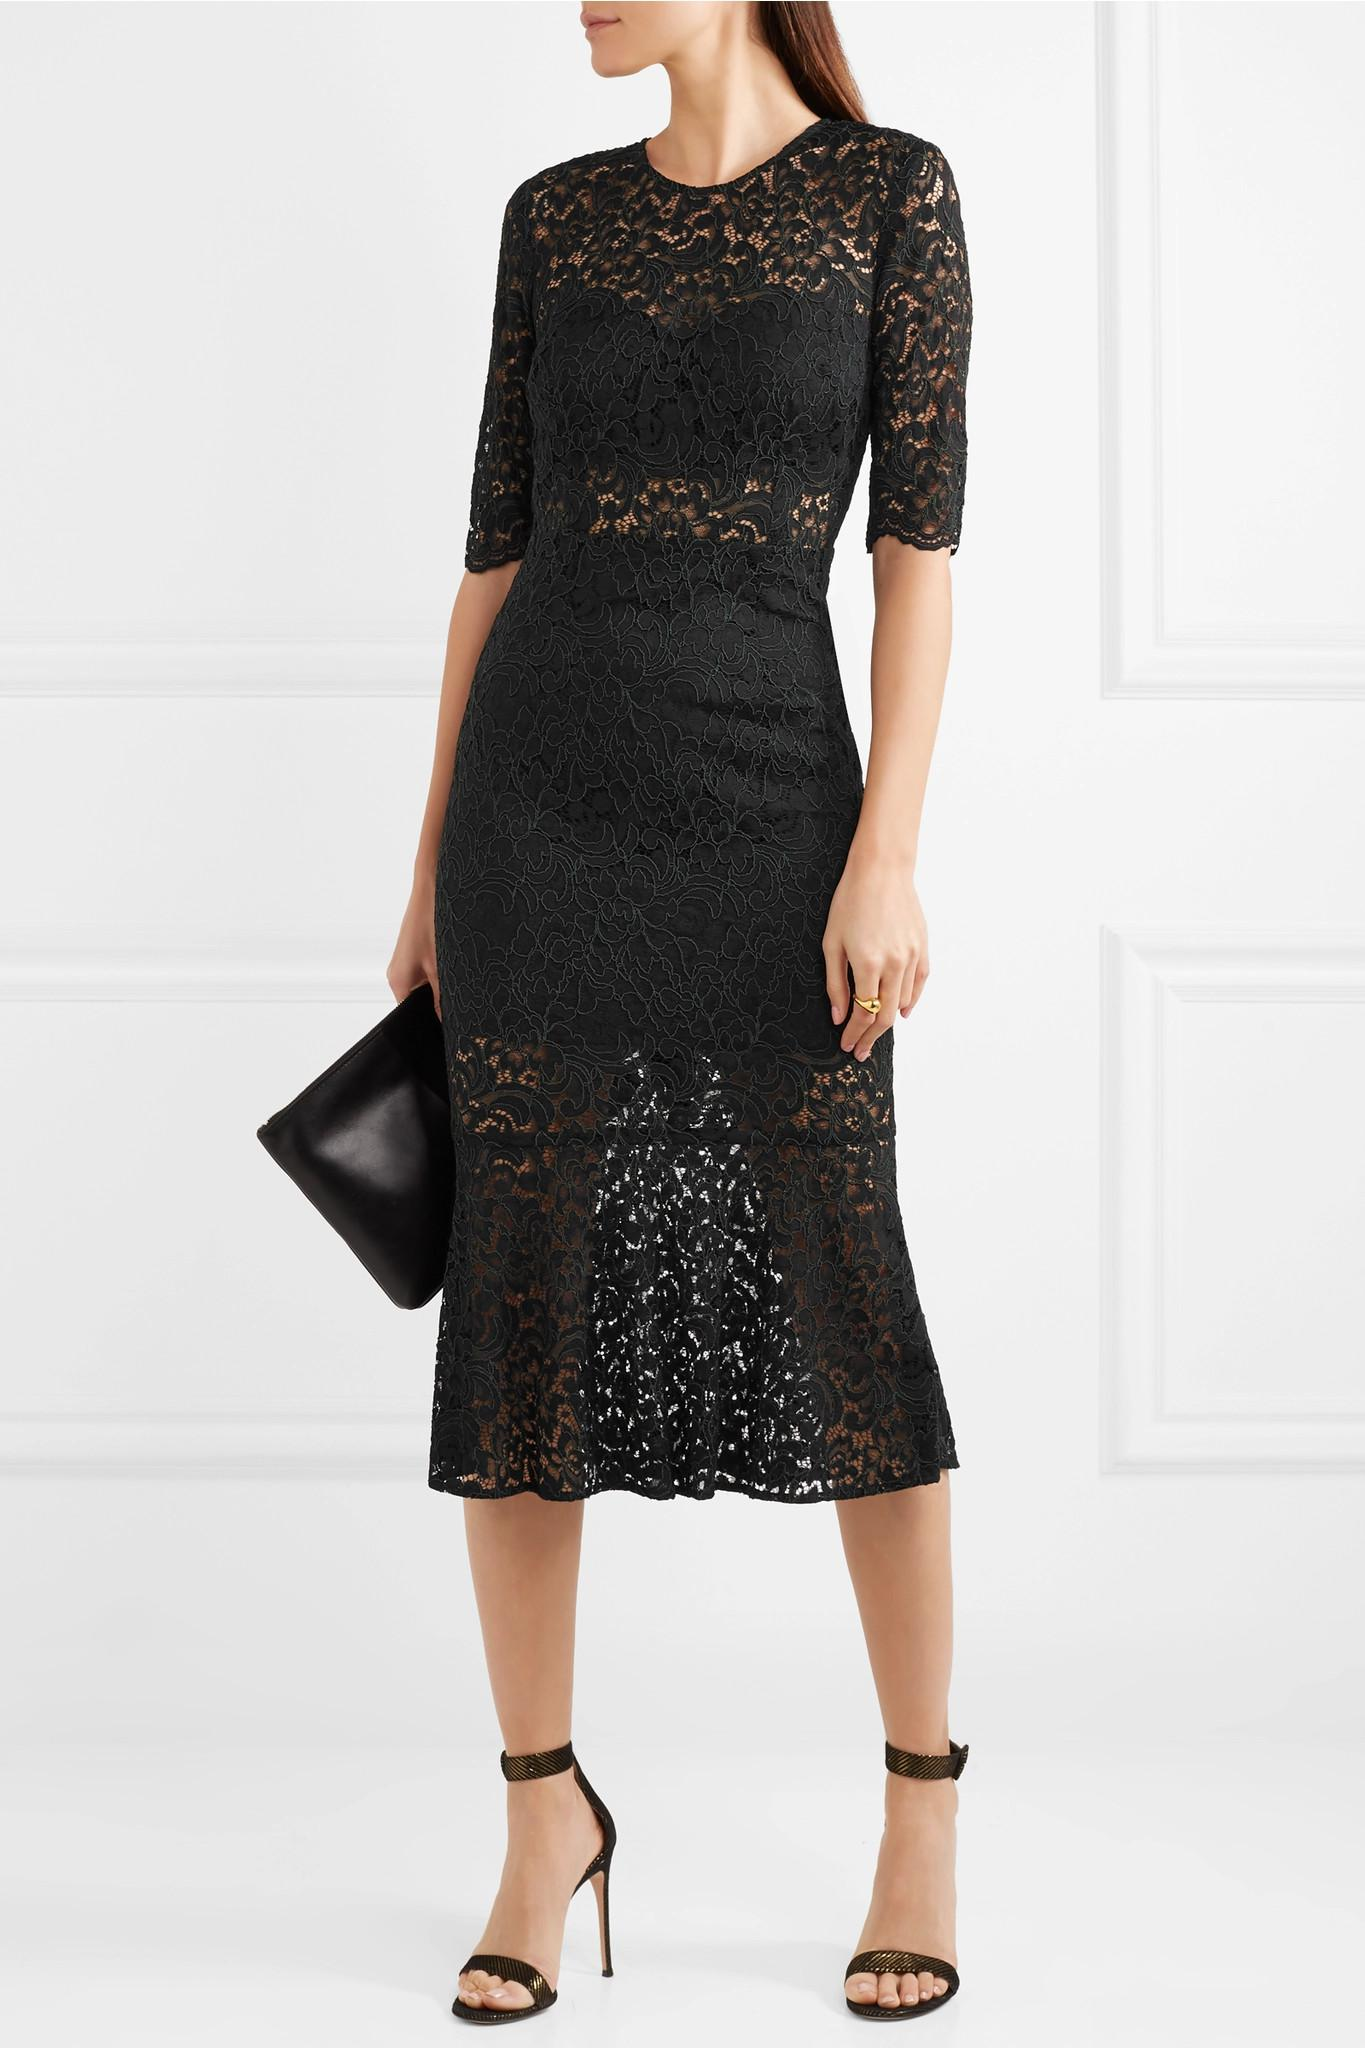 Linden Lace Midi Dress - Black Veronica Beard High Quality Cheap Online Prx0GuIHC